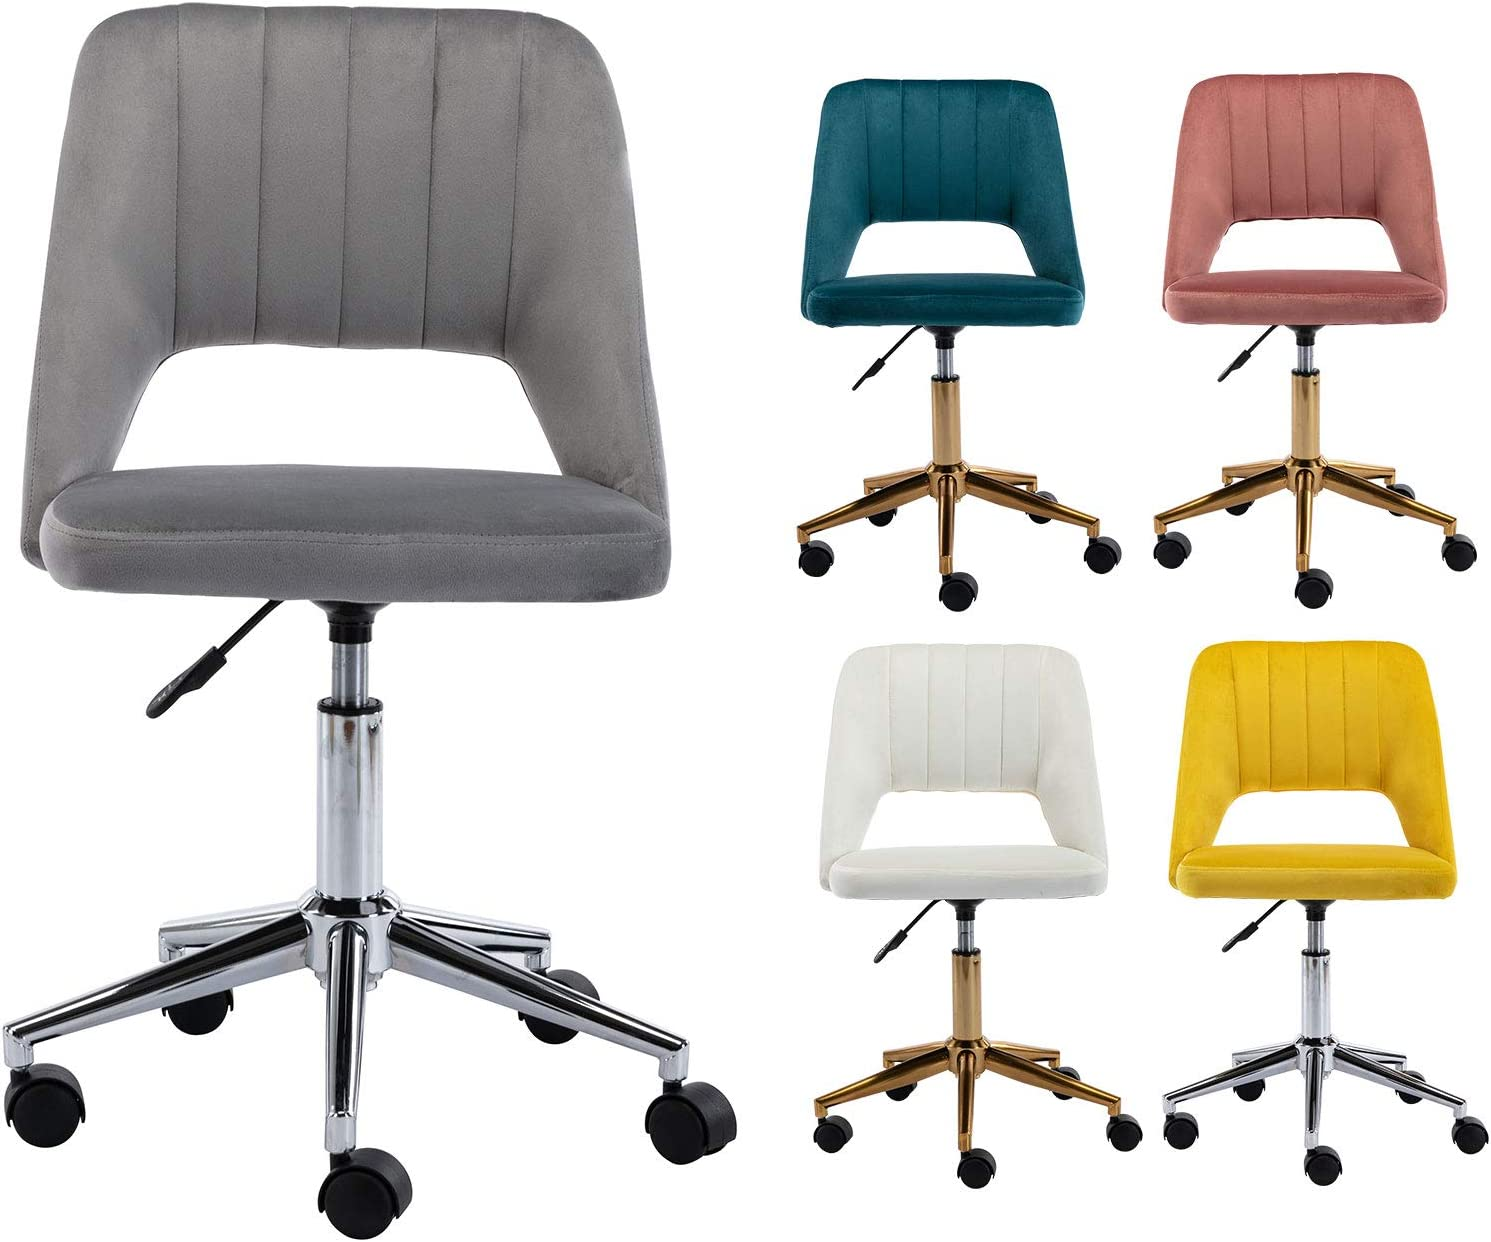 Guyou Cash special price Upholstered Elegant Home Office Chair Back Hollow Out Armles Cute